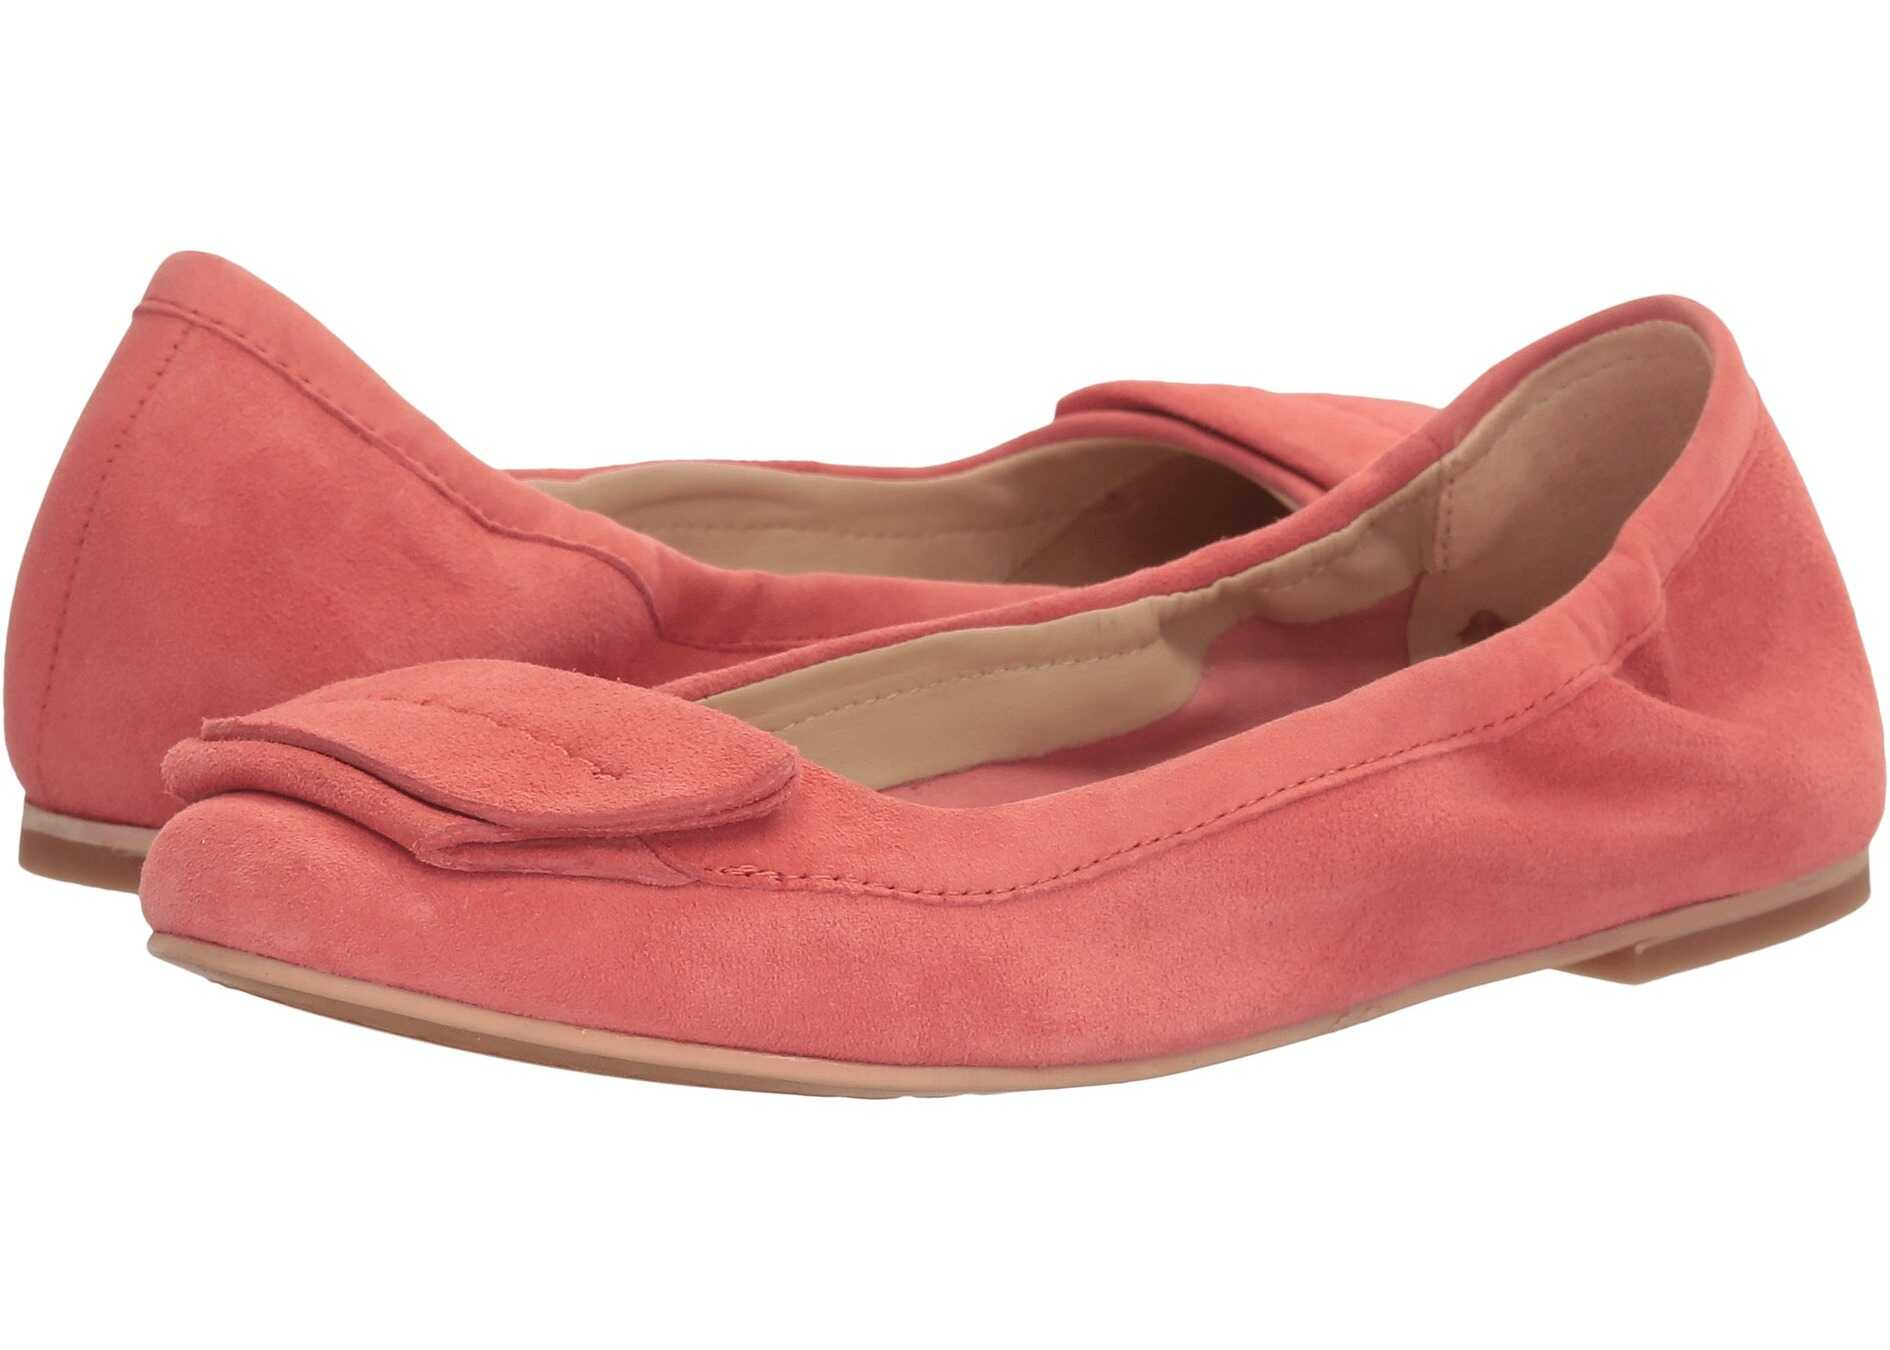 Hush Puppies Livi Heather Coral Suede